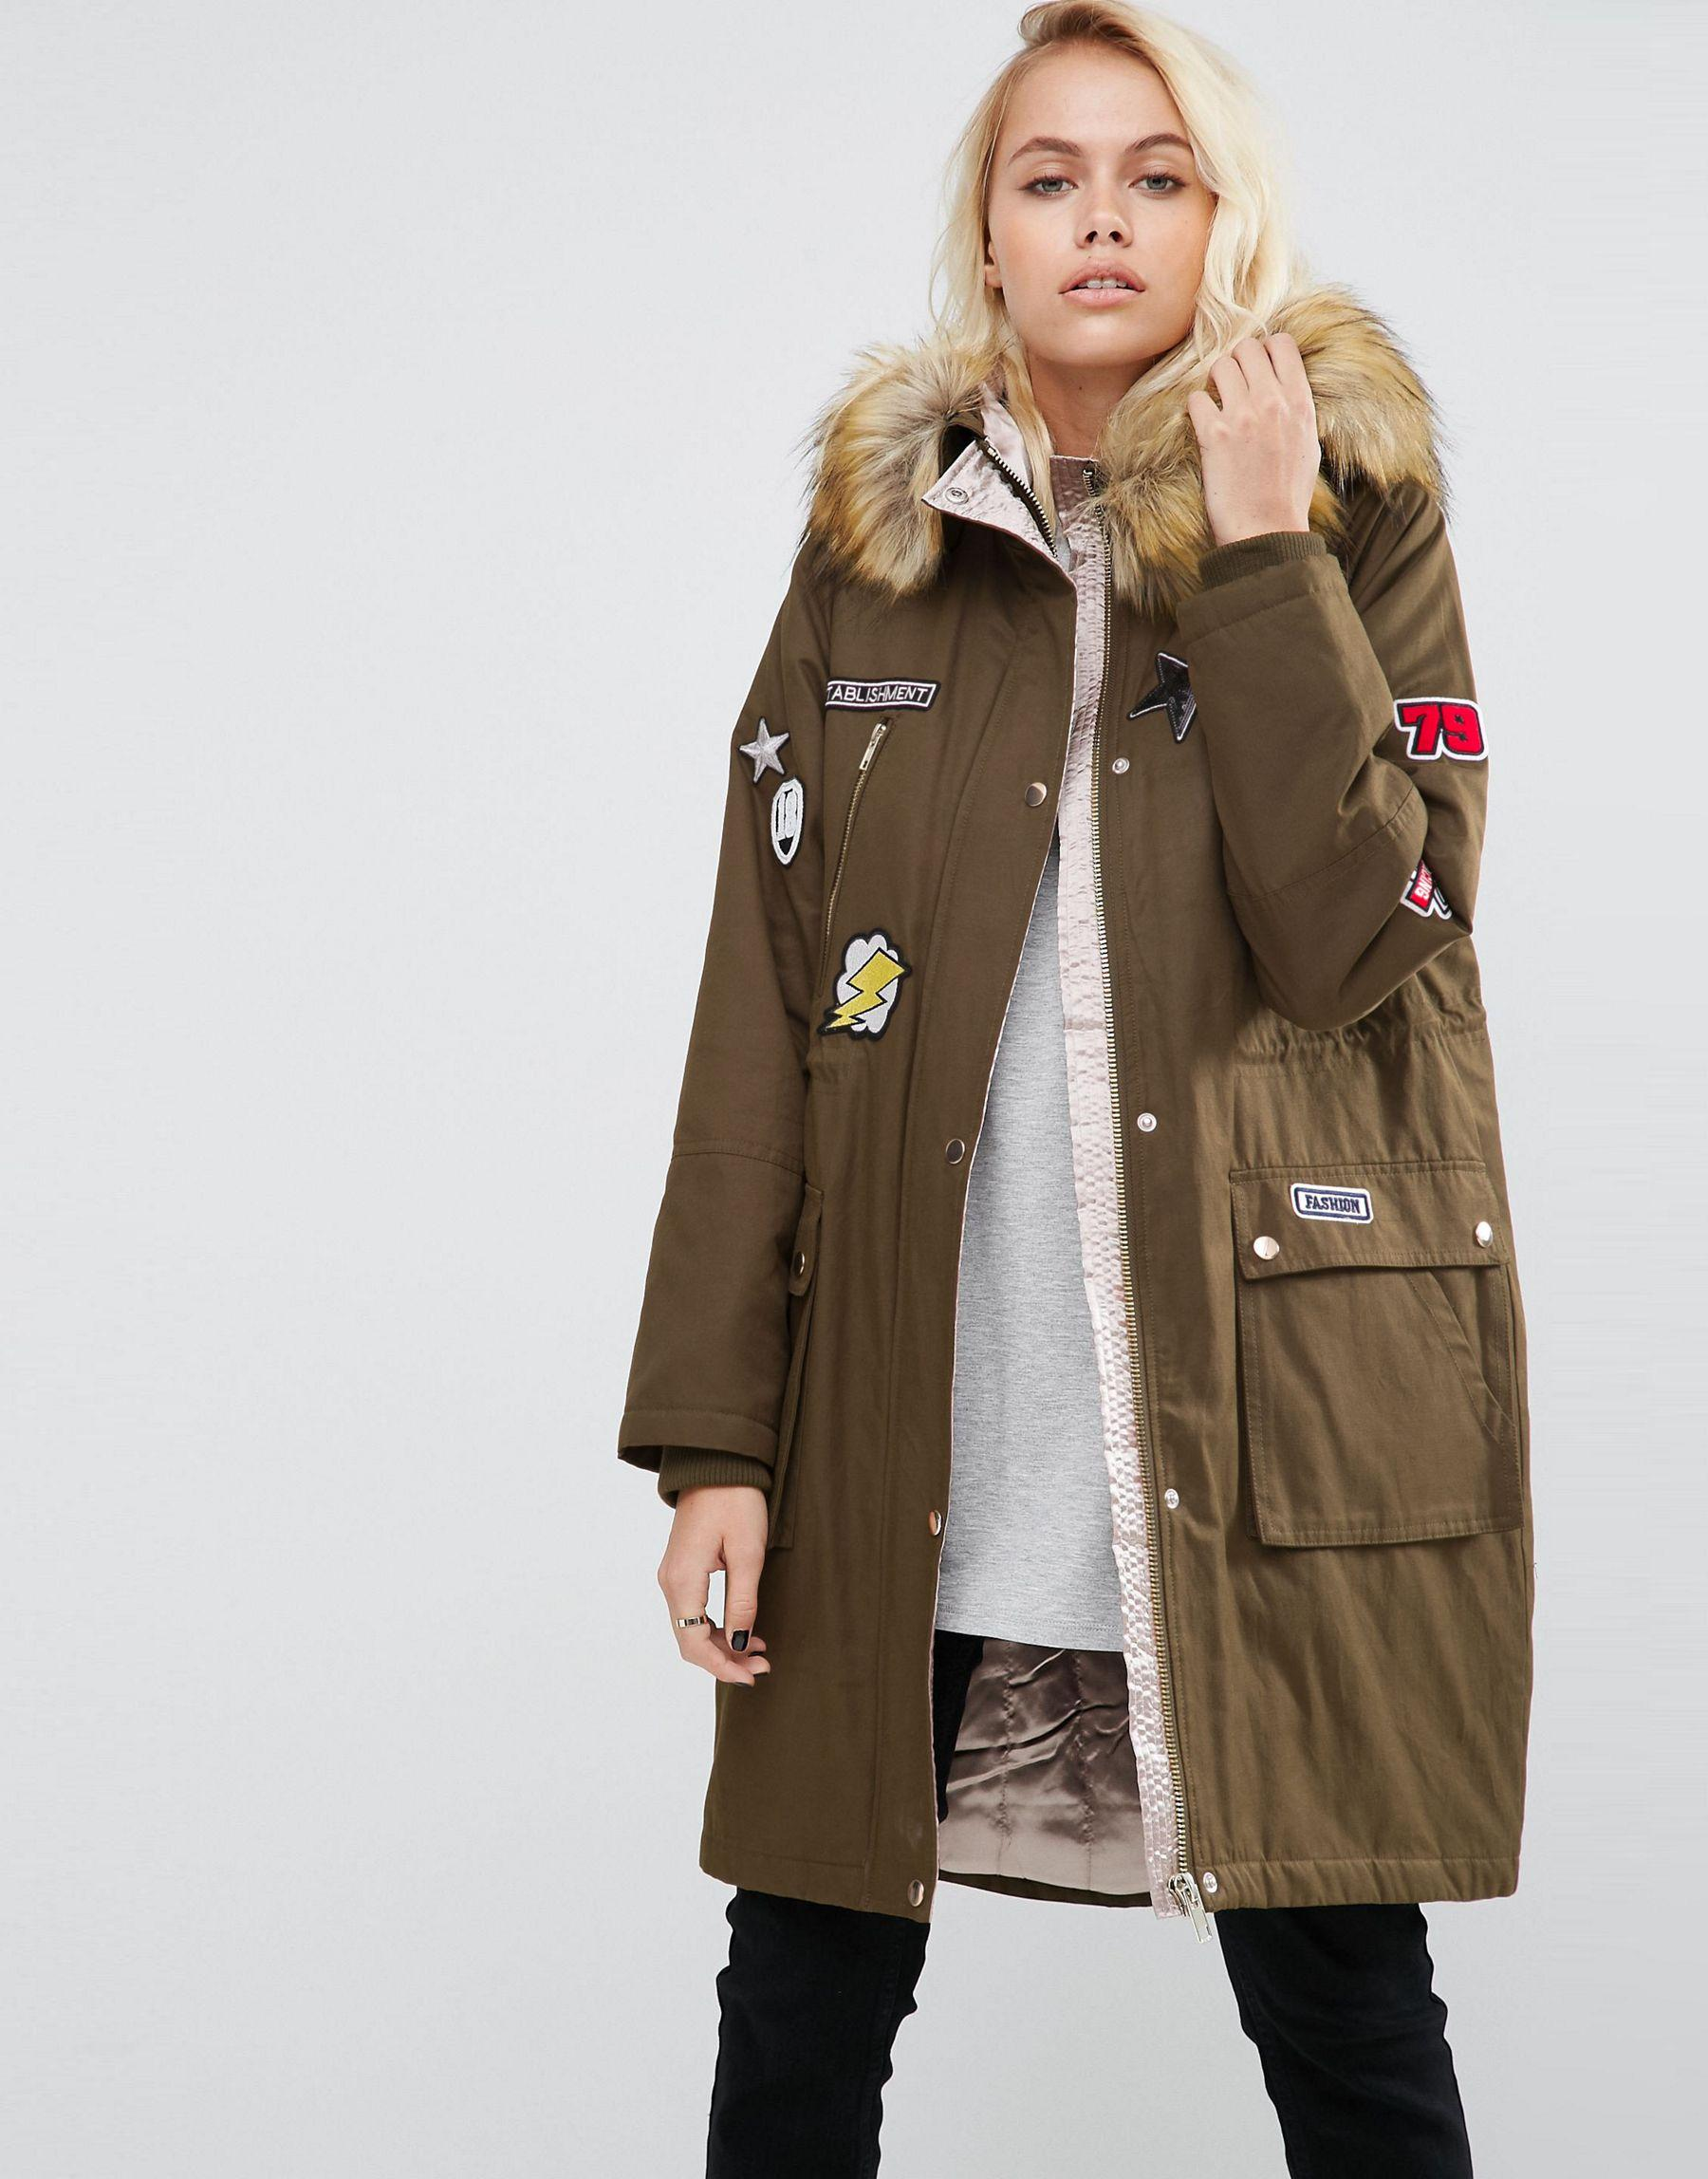 asos badged parka with satin lining lyst #1: khaki 92e37b04